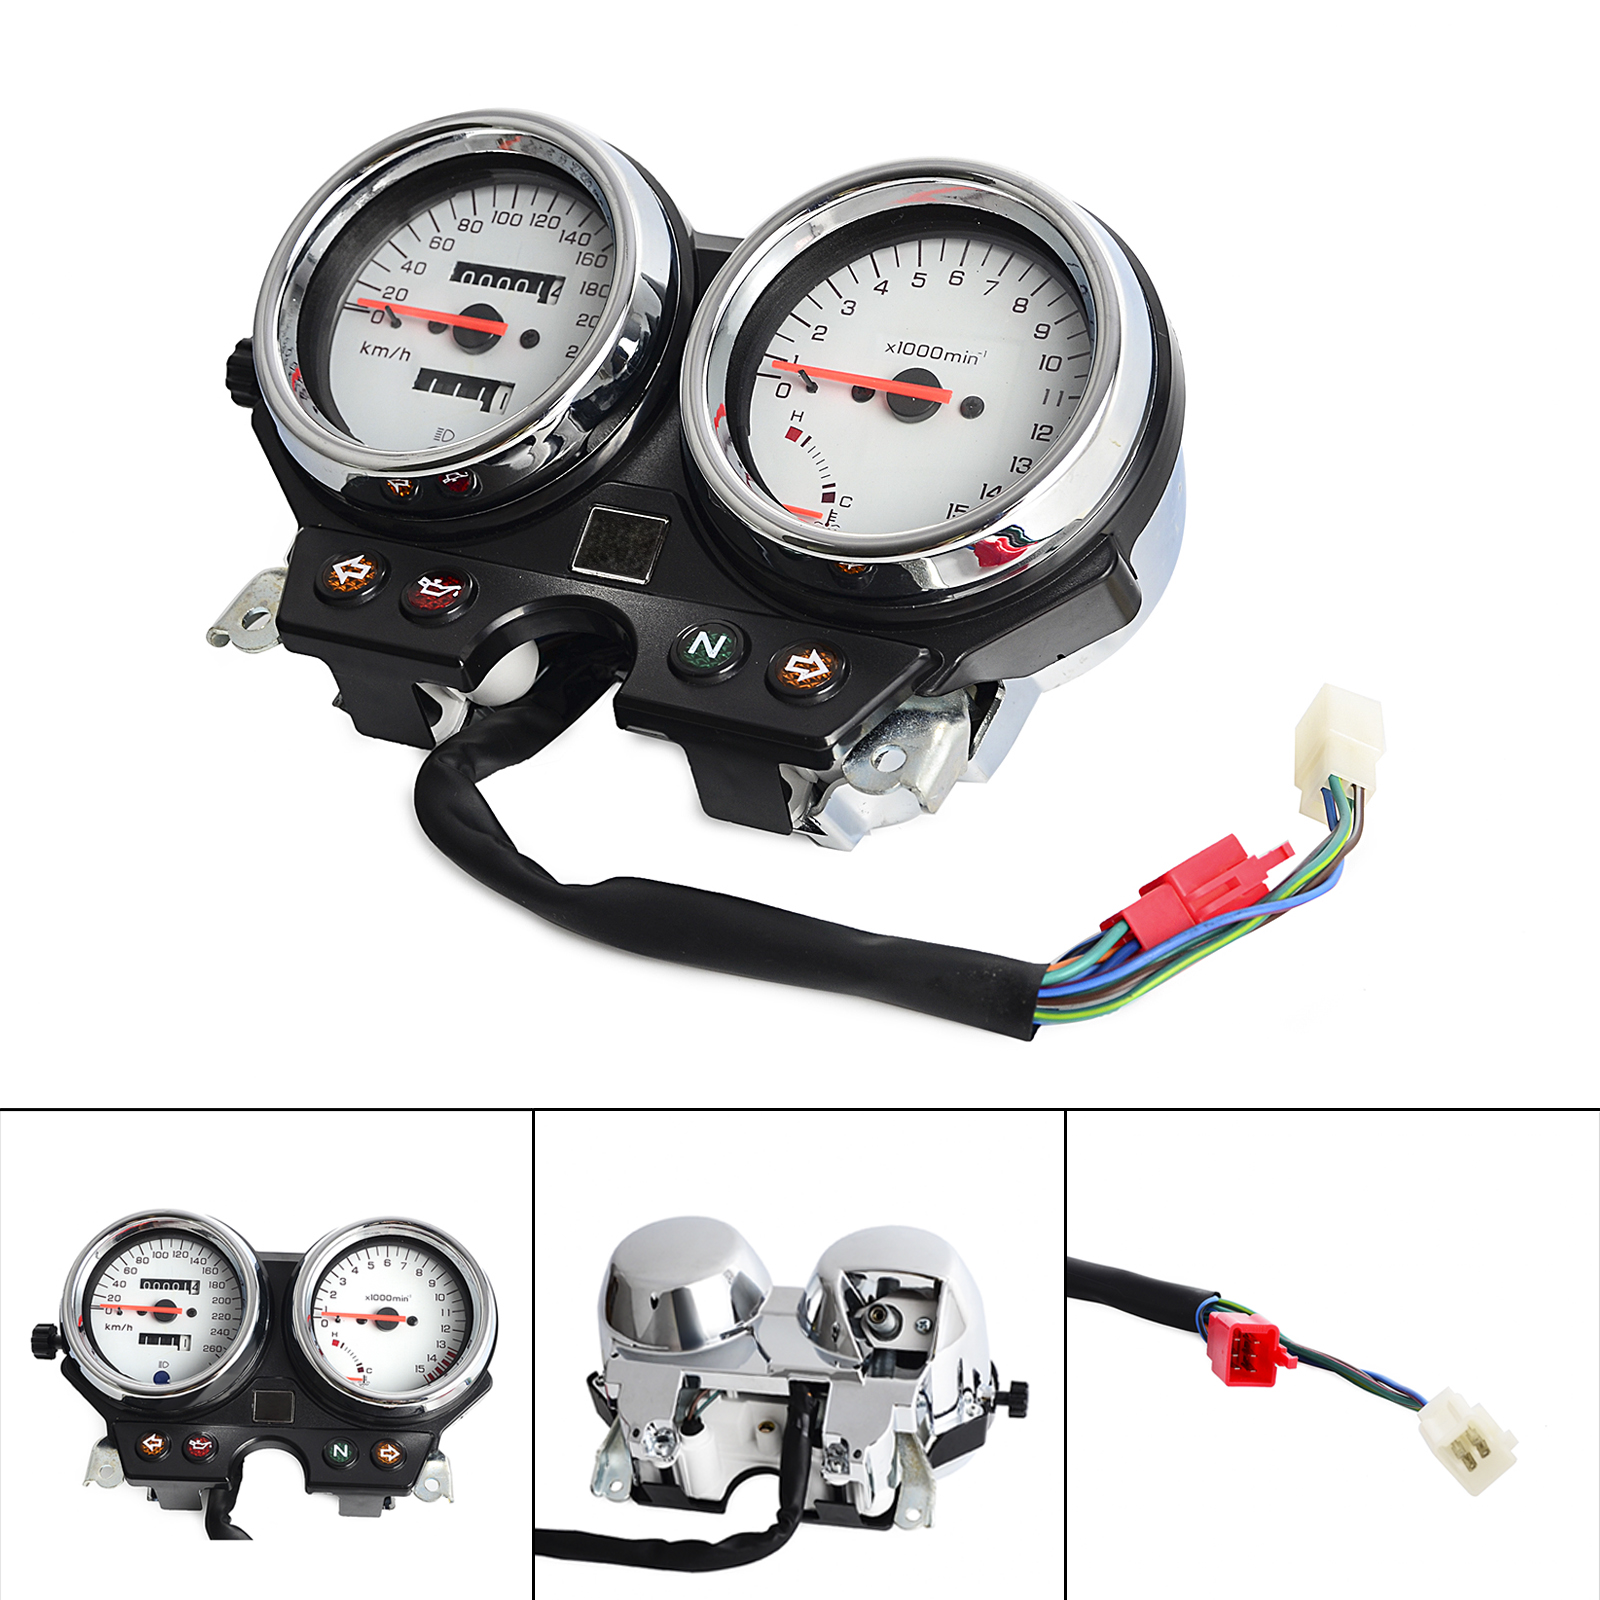 Motorcycle Gauges Cluster Speedometer For Honda CB600 <font><b>Hornet</b></font> <font><b>600</b></font> 1996 - 2002 1997 1998 1999 <font><b>2000</b></font> 2001 Hornet600 NEW image